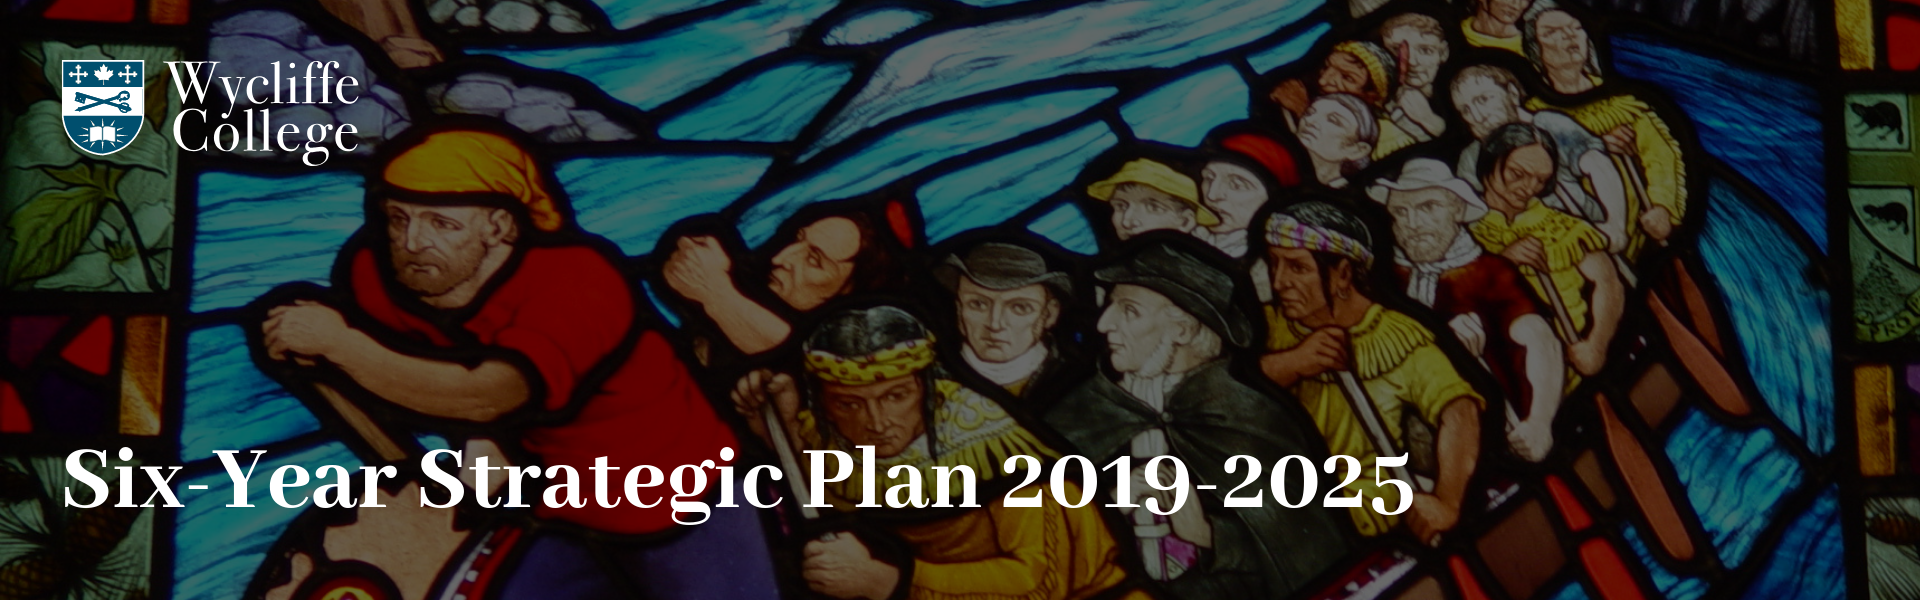 Wycliffe College Strategic Plan 2019-2025